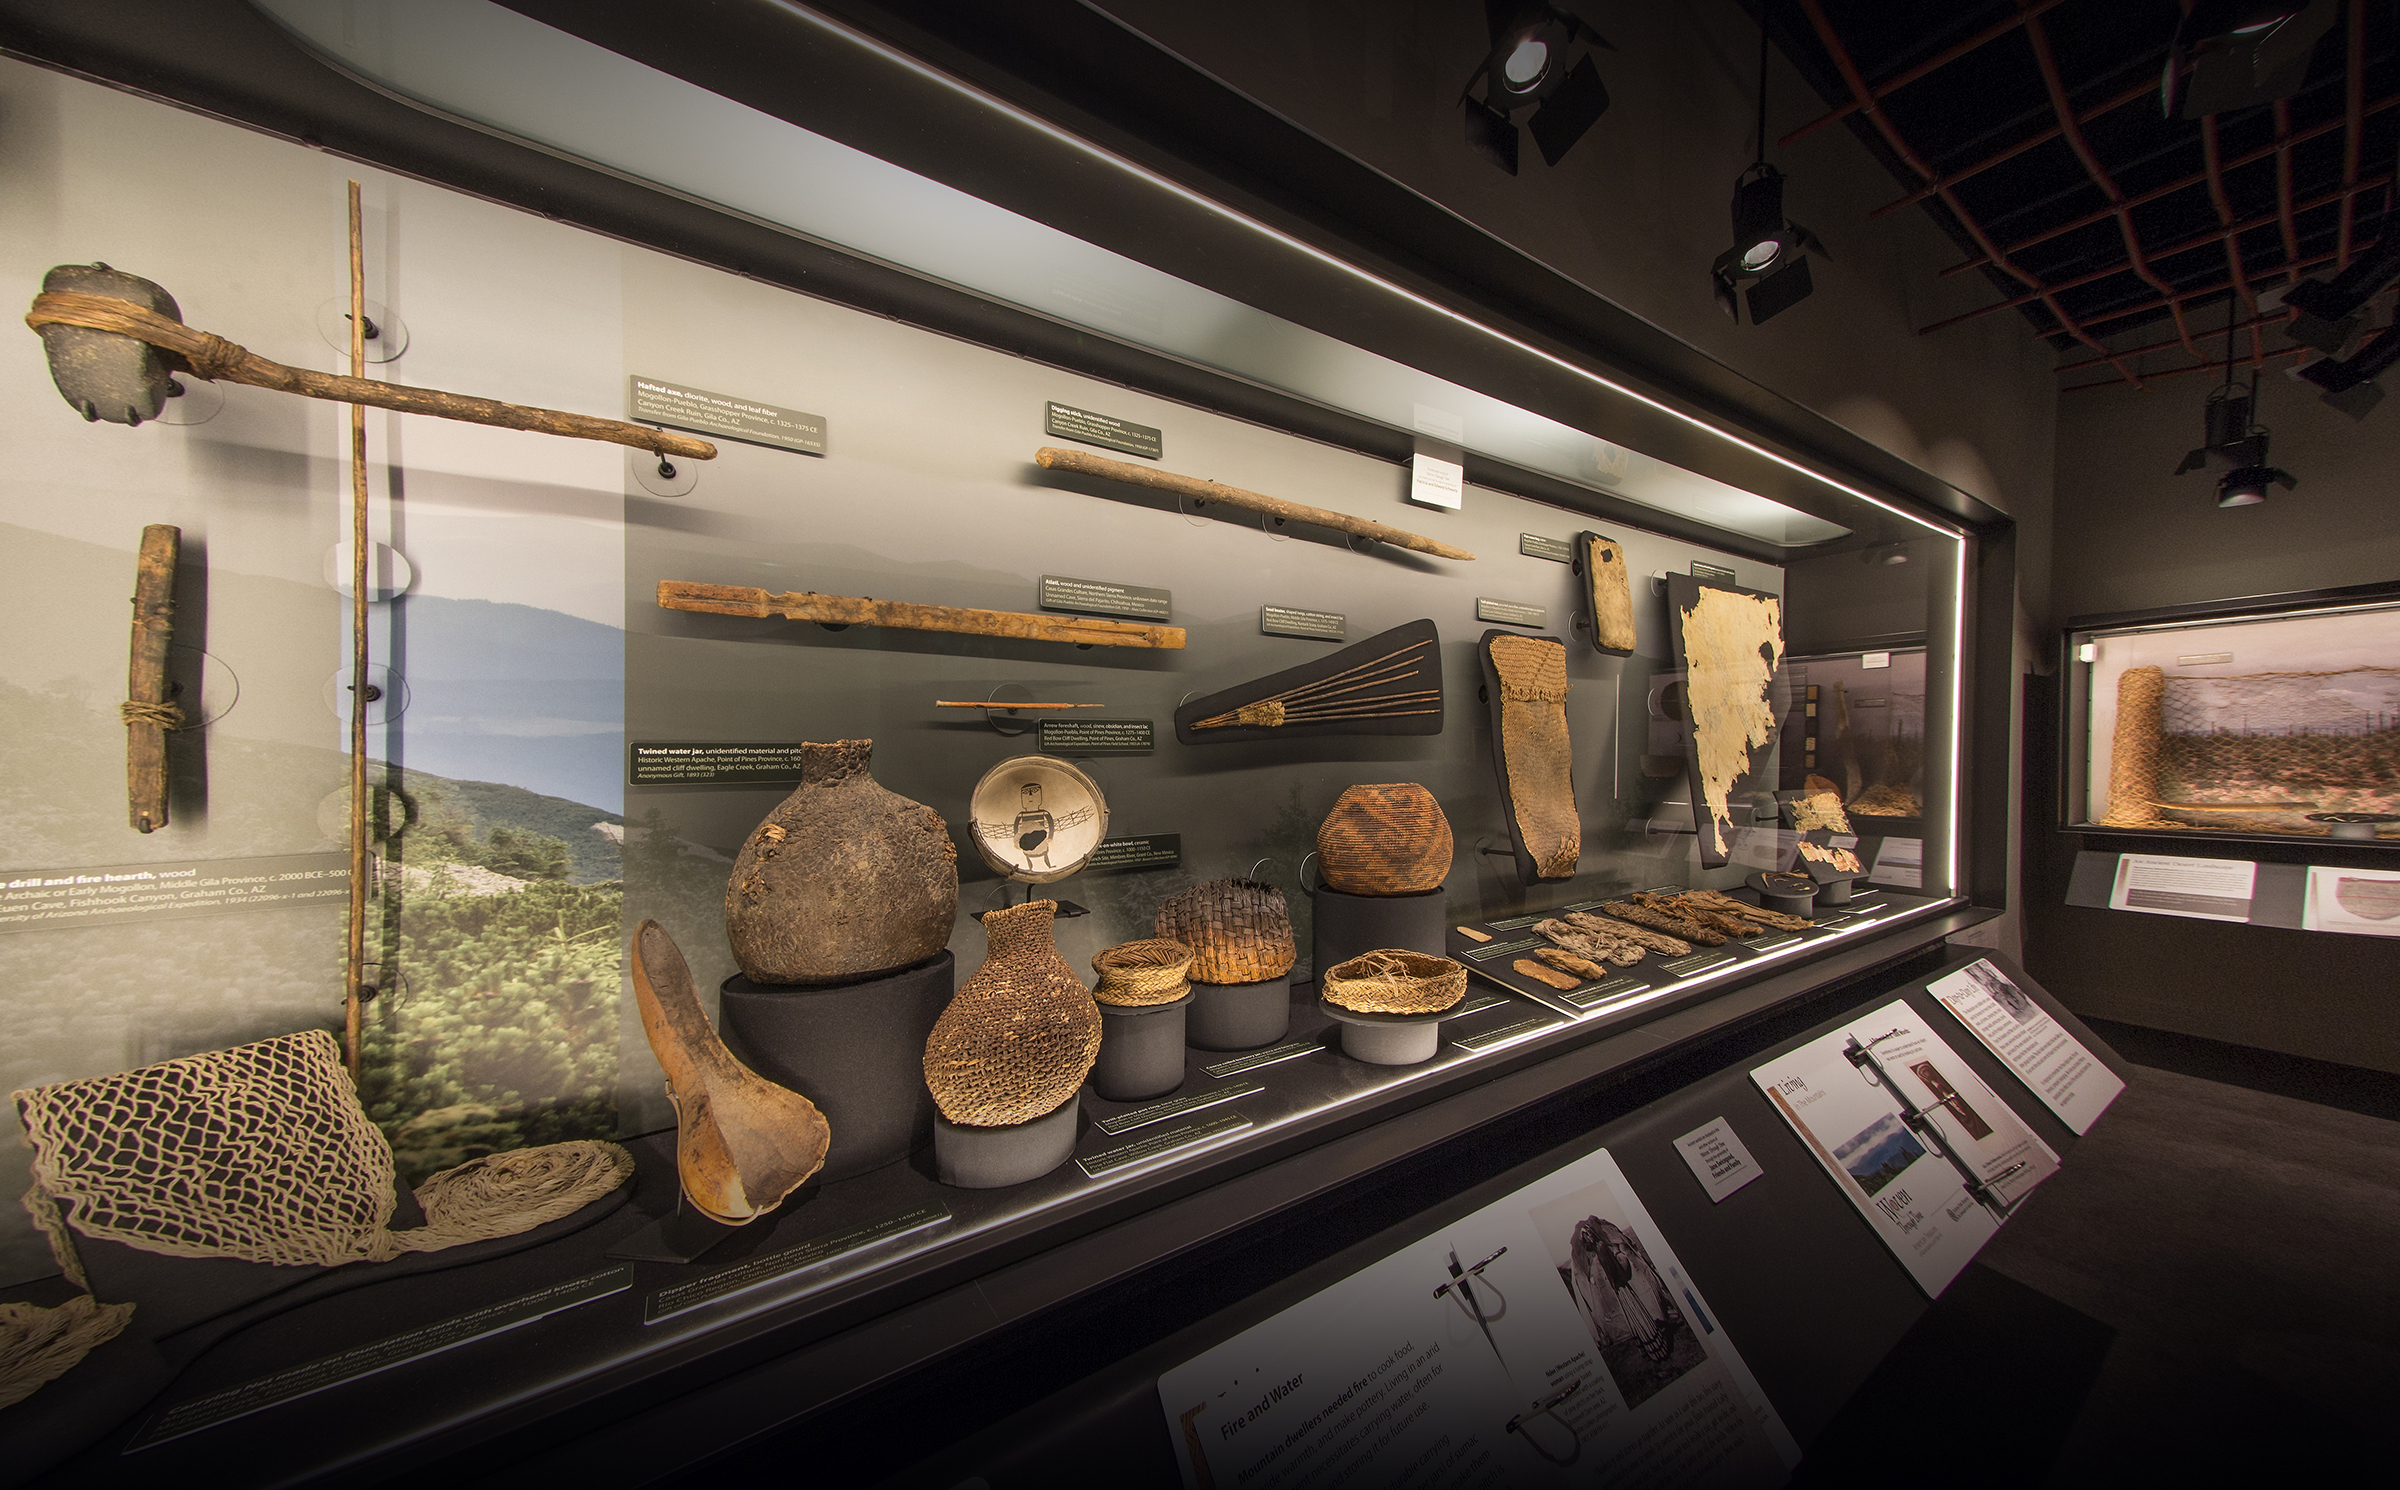 This image shows a view into one of the cases displaying archaeological basketry and other fiber objects.